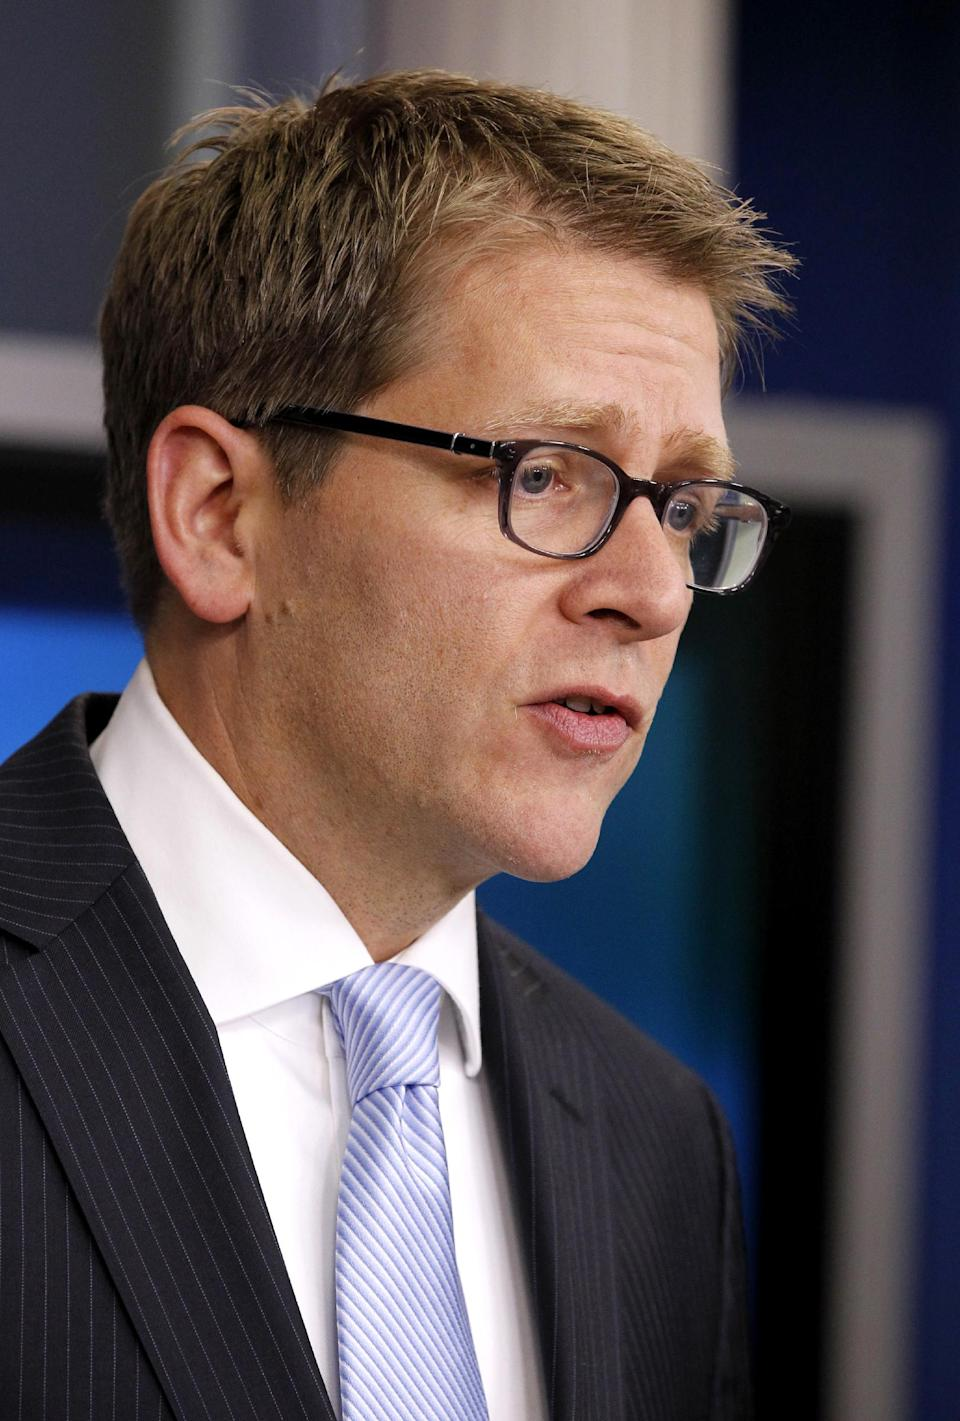 White House Press Secretary Jay Carney speaks during his daily briefing, Tuesday, Jan. 3, 2012, in the White House's Brady Briefing Room in Washington. (AP Photo/Haraz N. Ghanbari)